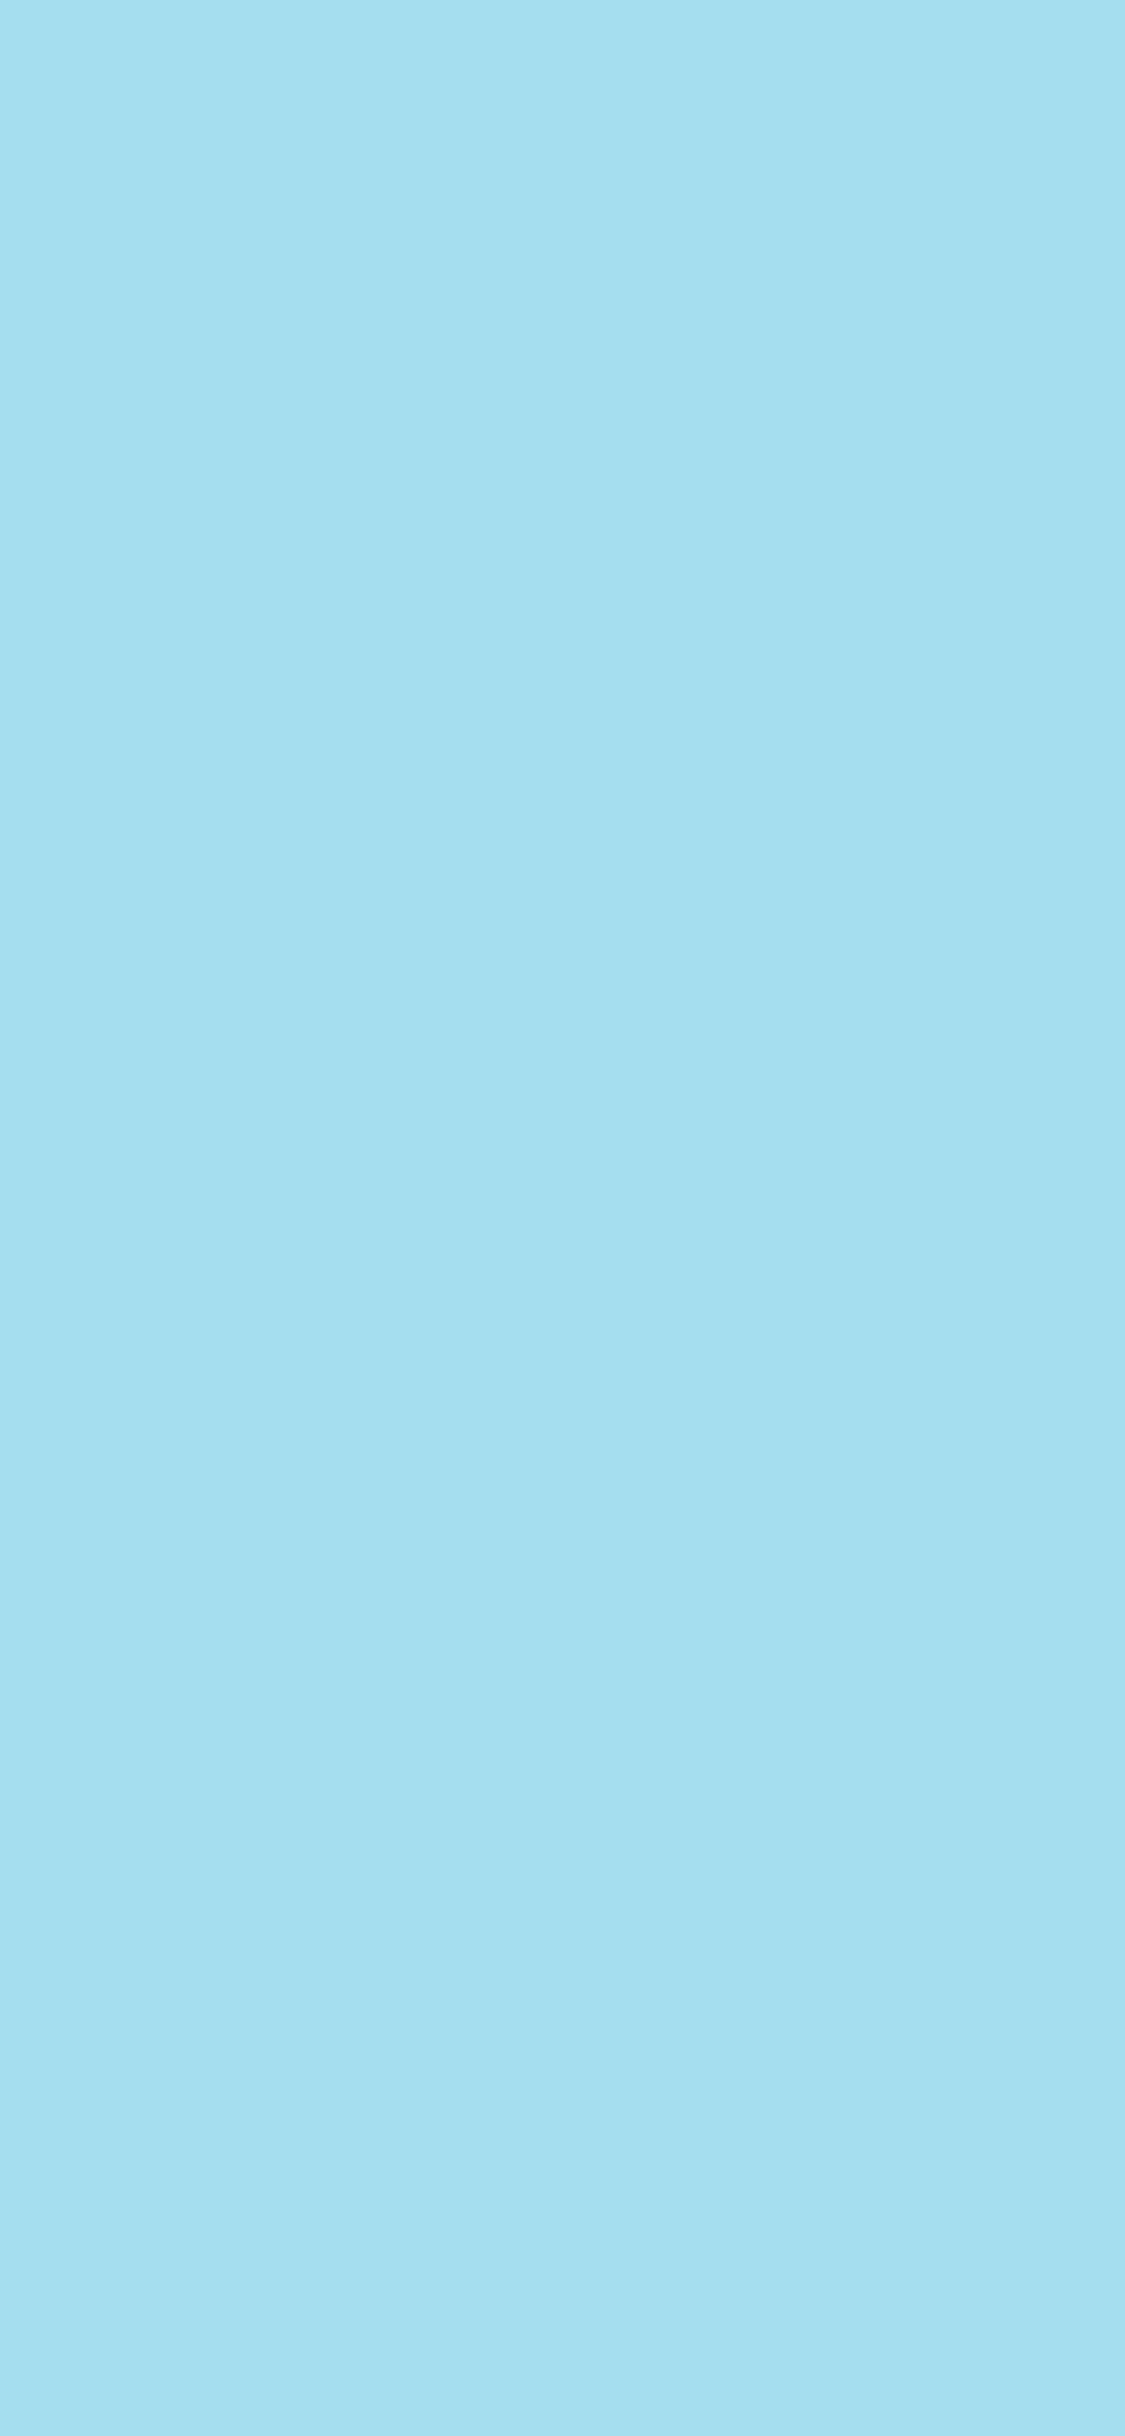 1125x2436 Non-photo Blue Solid Color Background